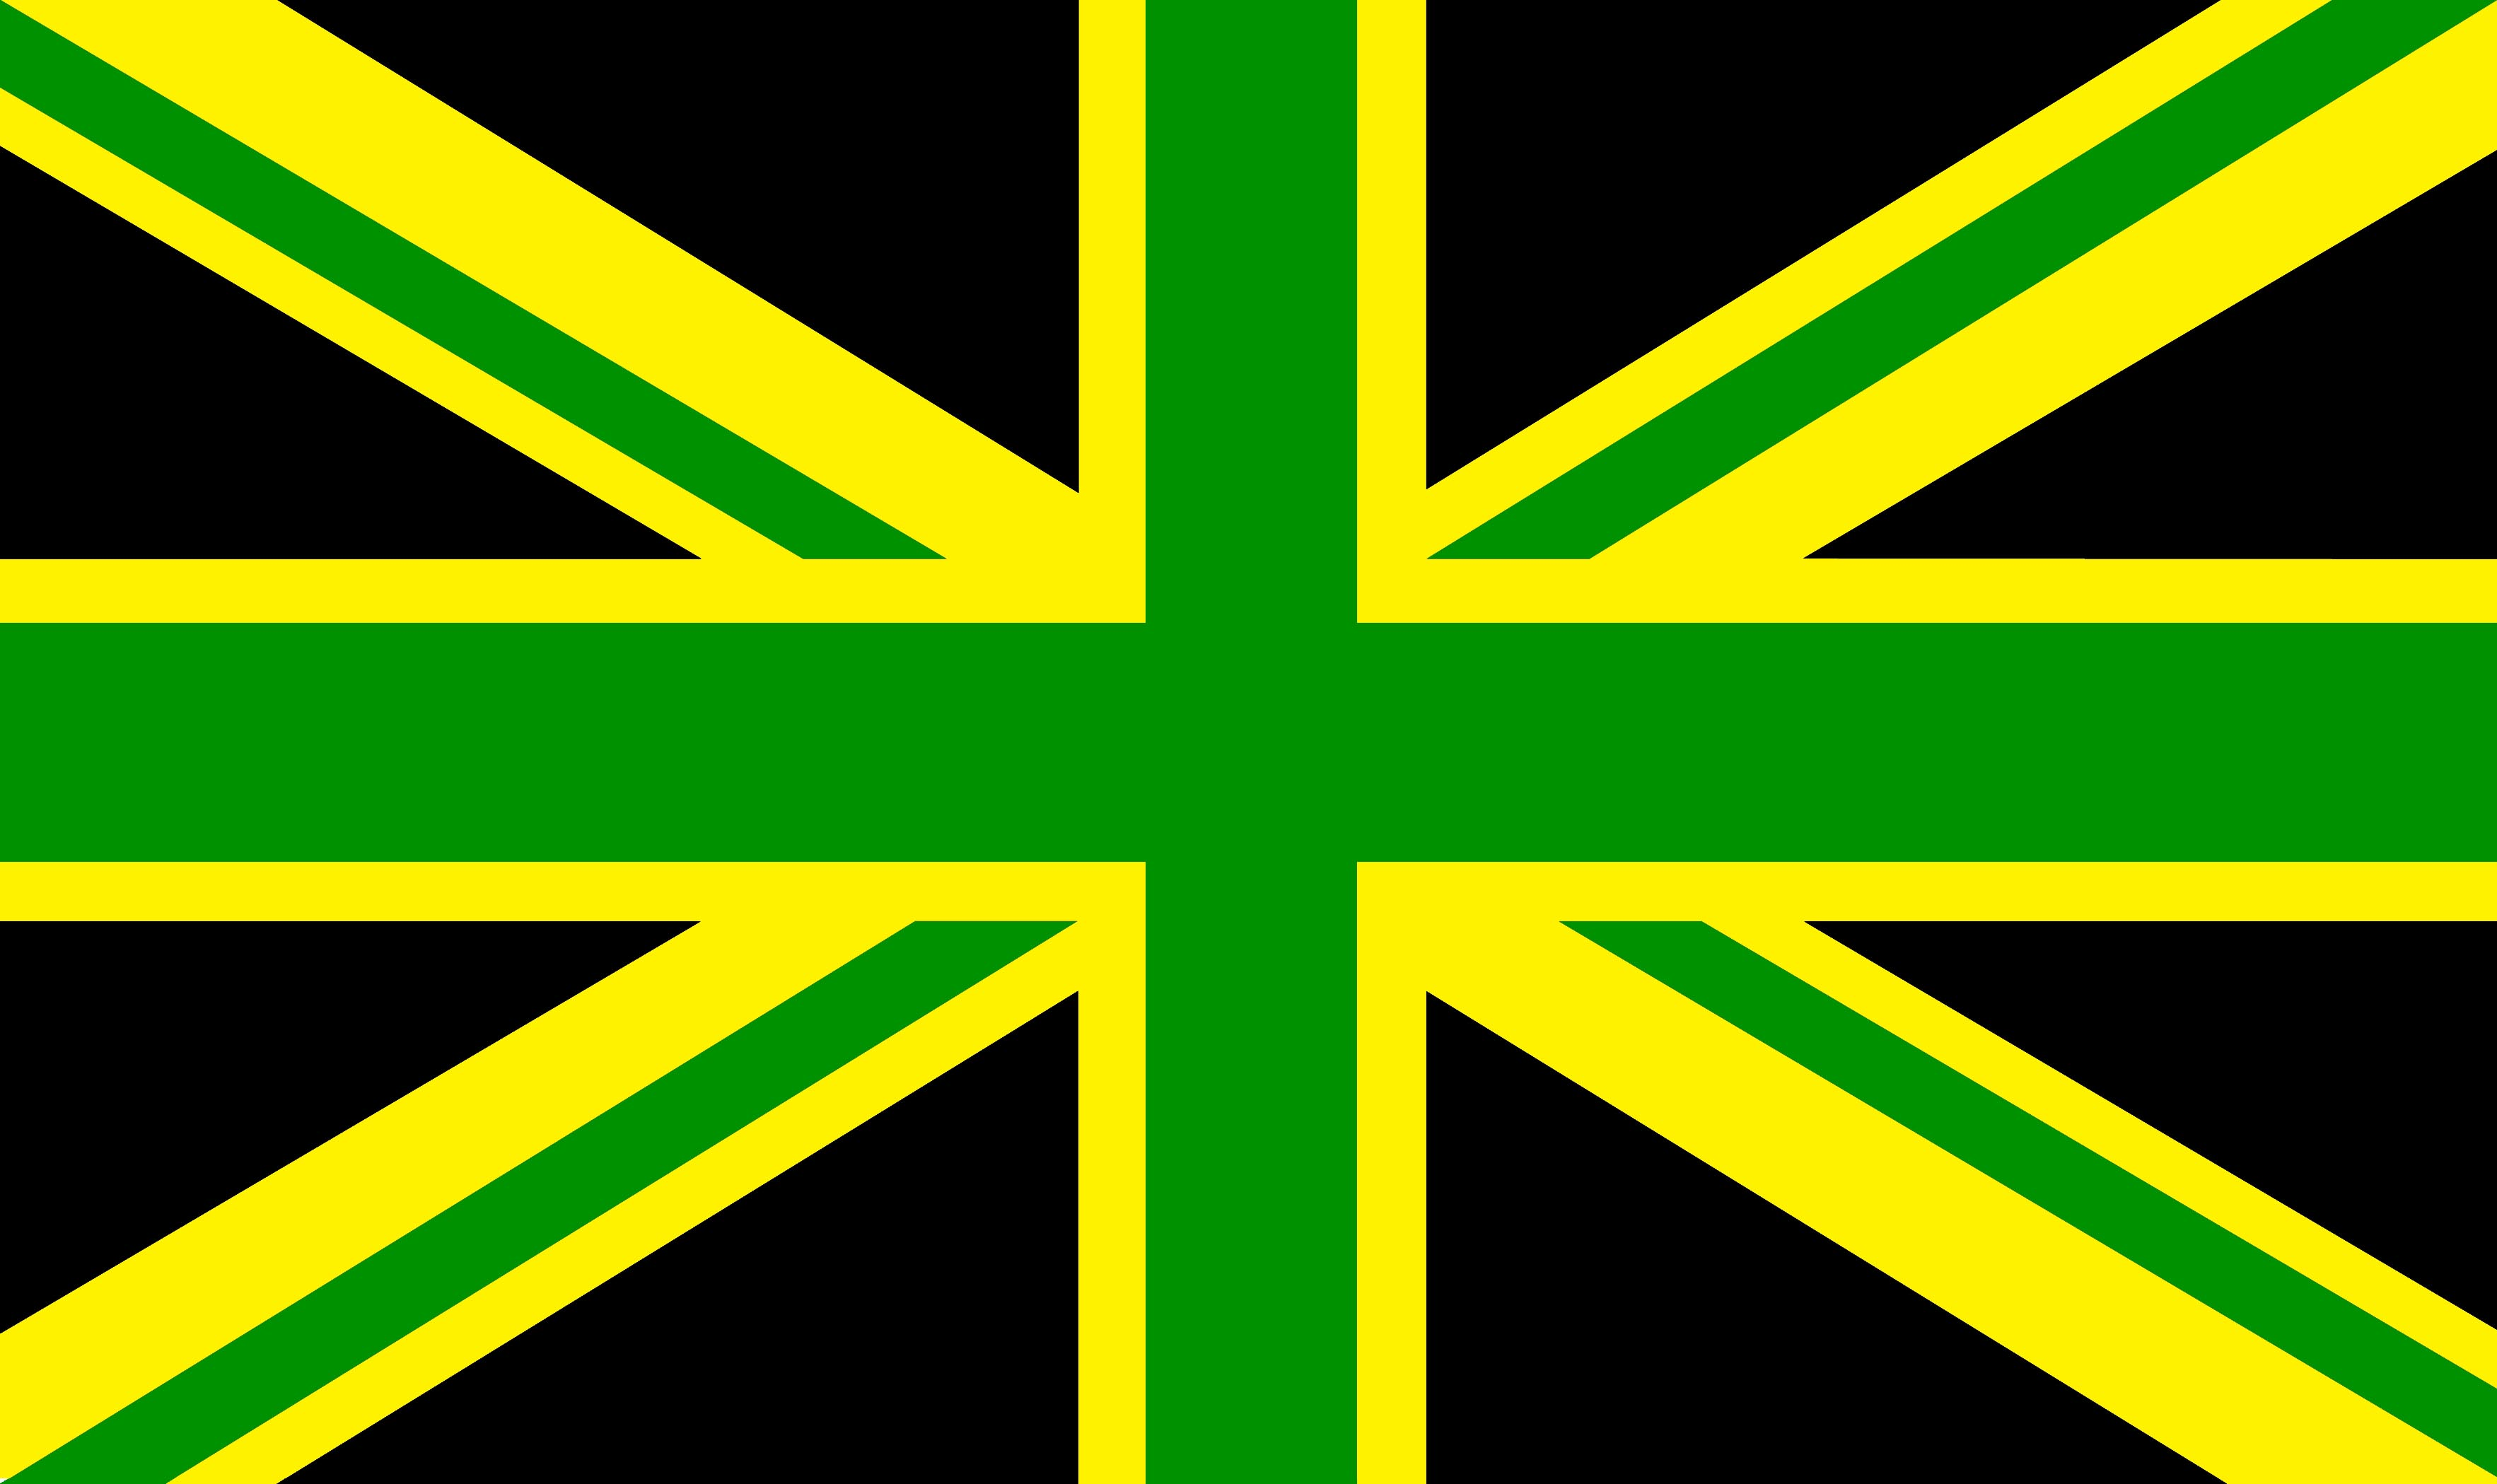 Anti-colonialist flag